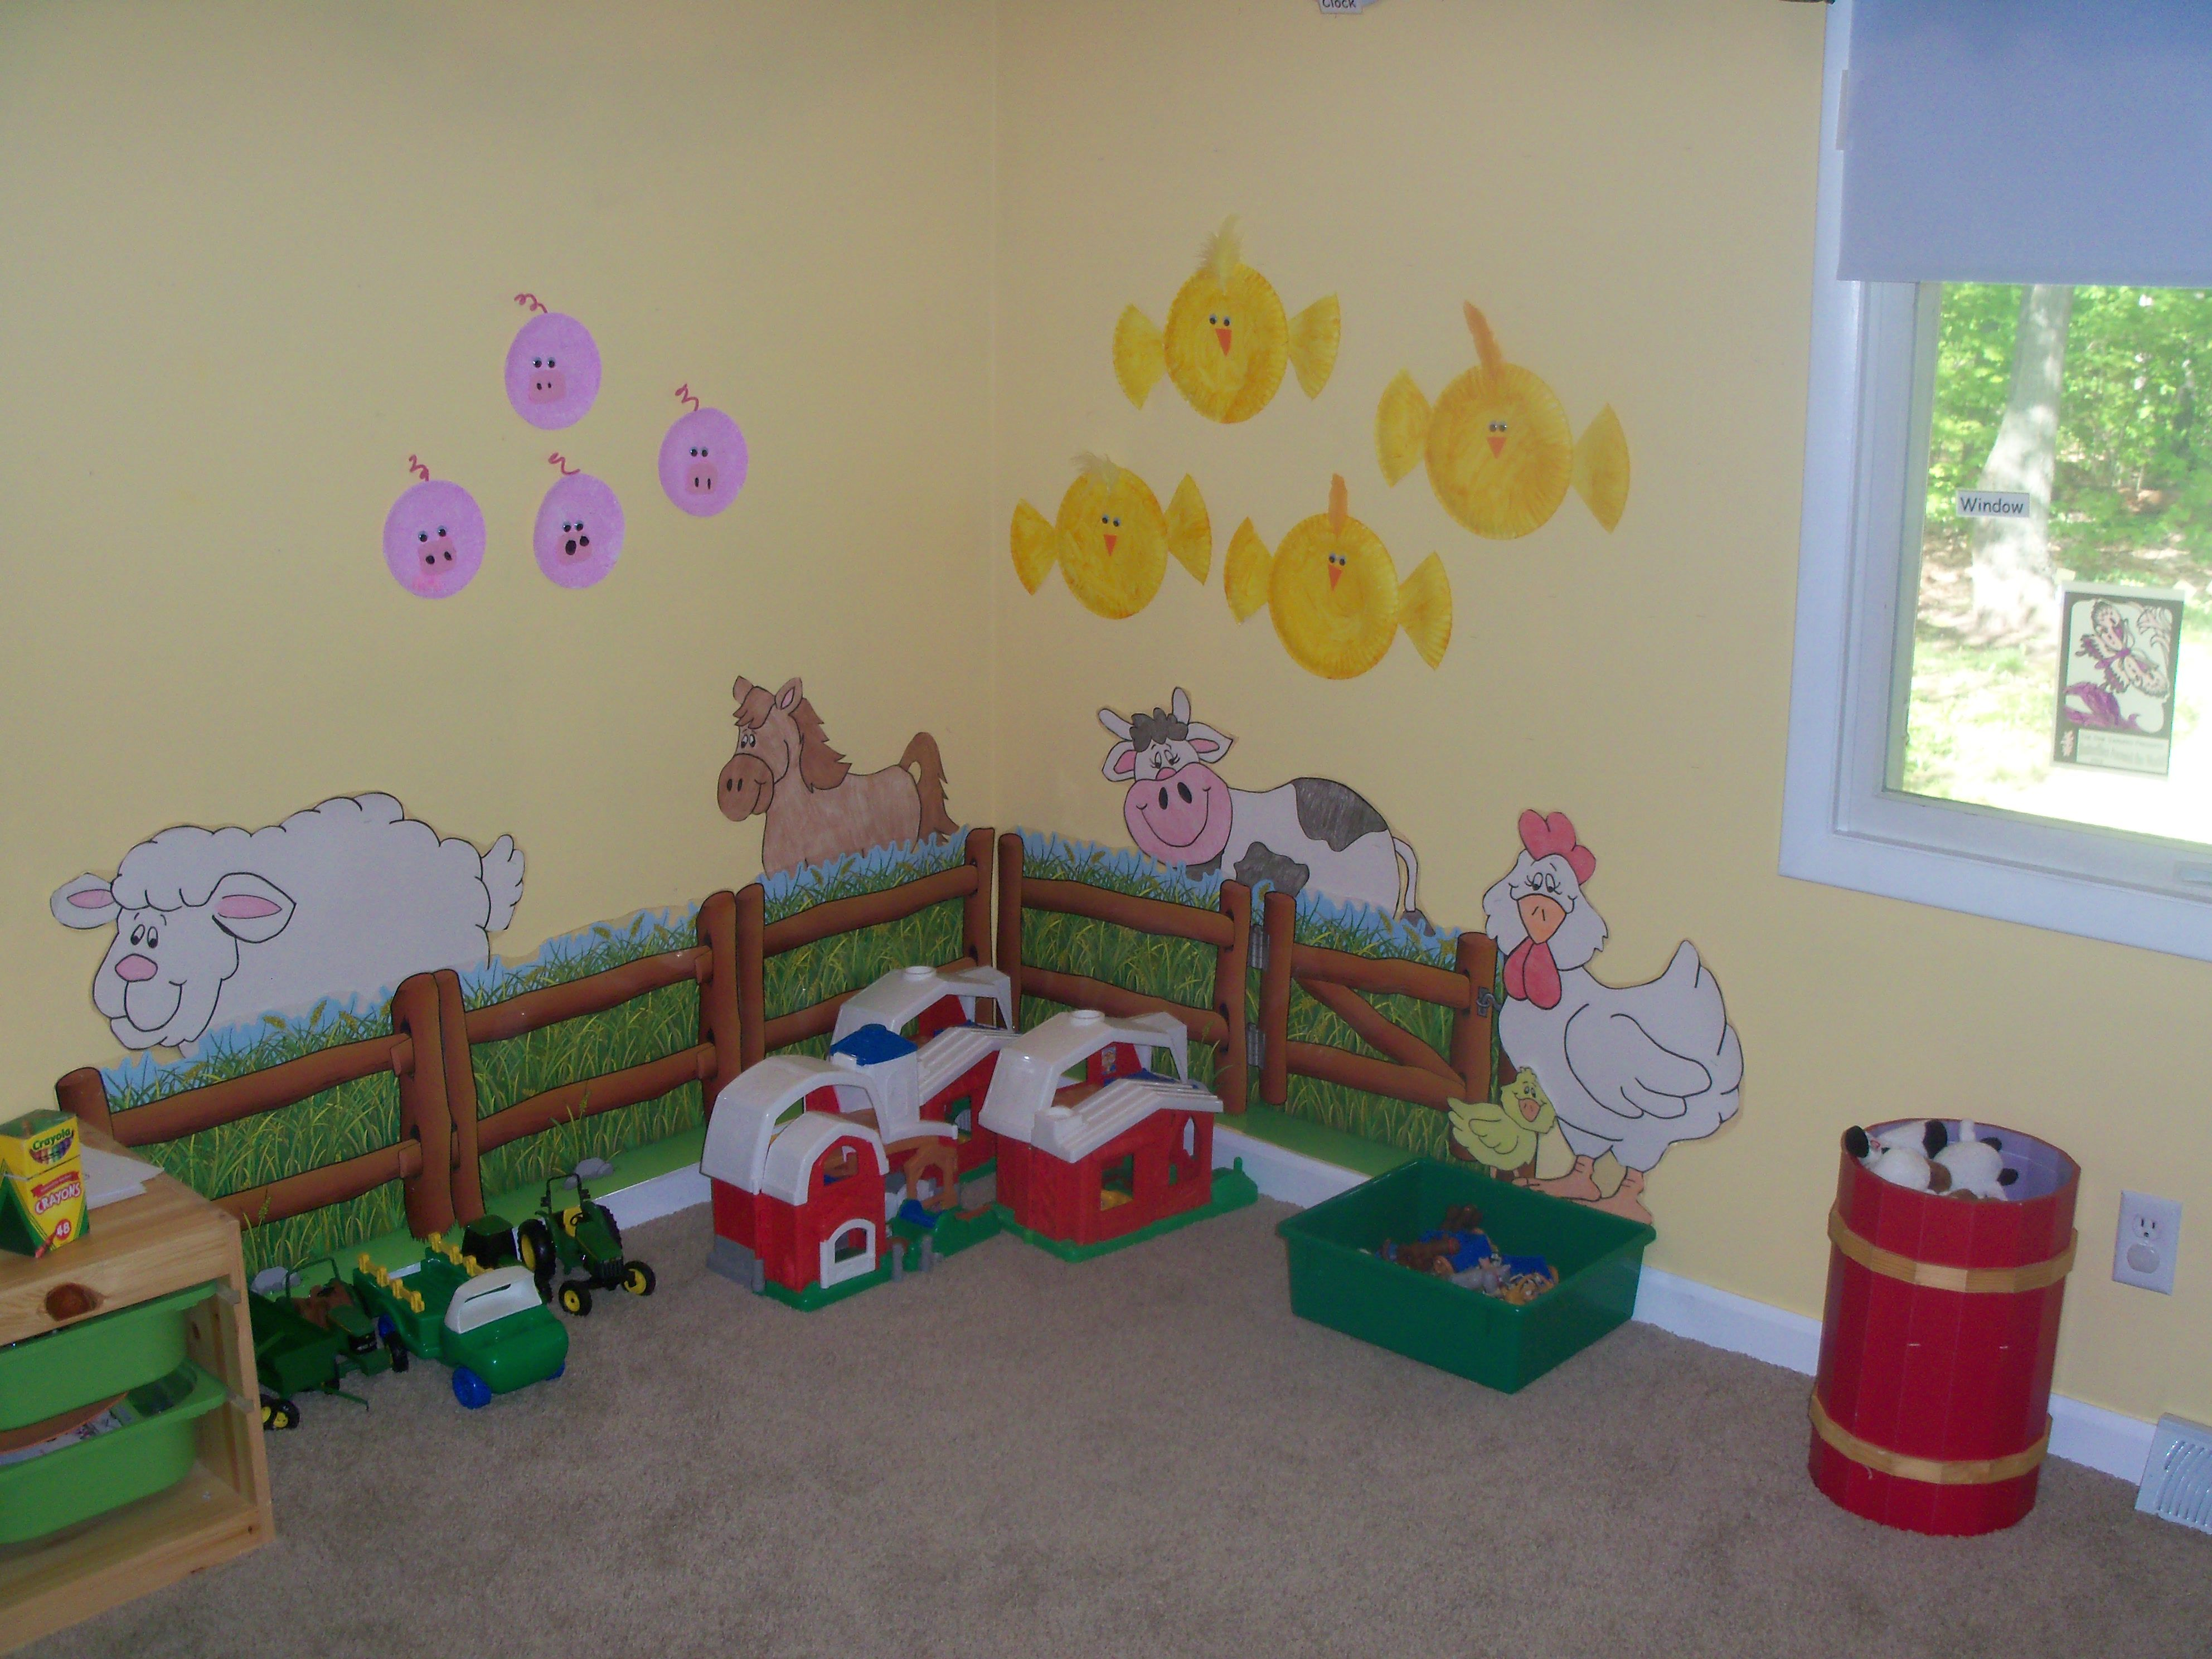 Wall Decorations In Classroons Farm Pictures to Pin on ...